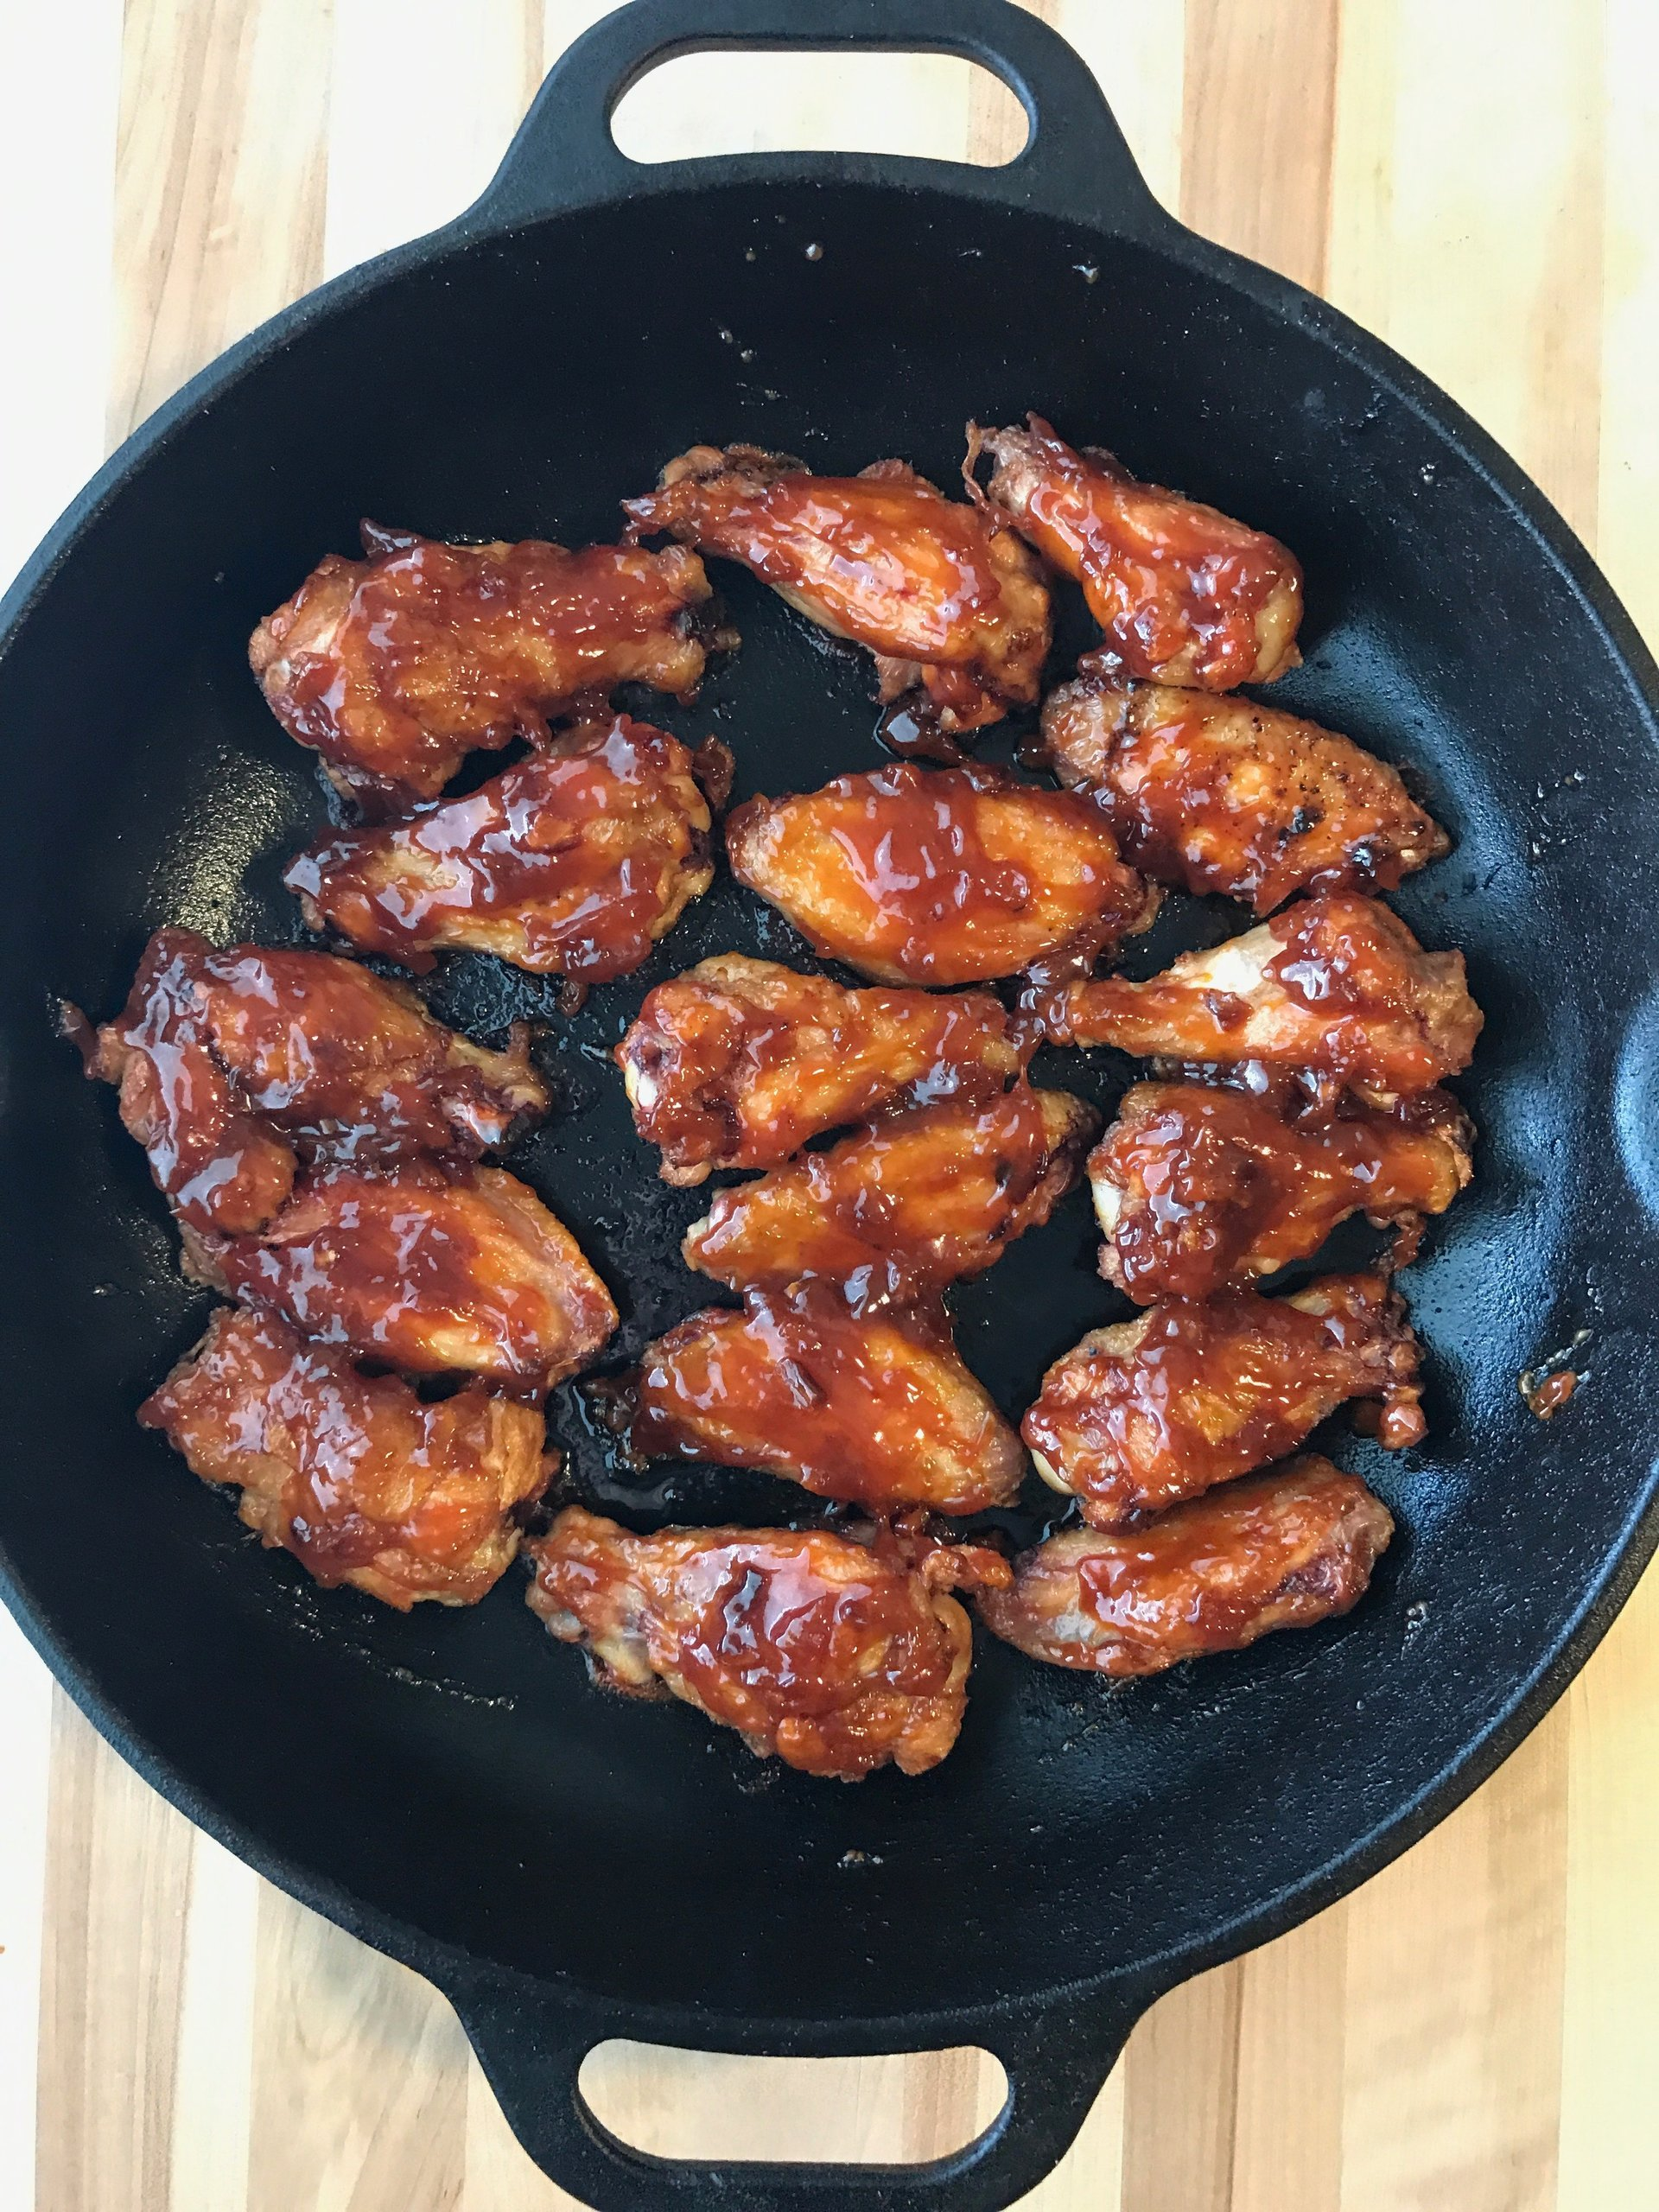 Top view of Smoked Maple-Bourbon Chicken Wings in a cast iron pan